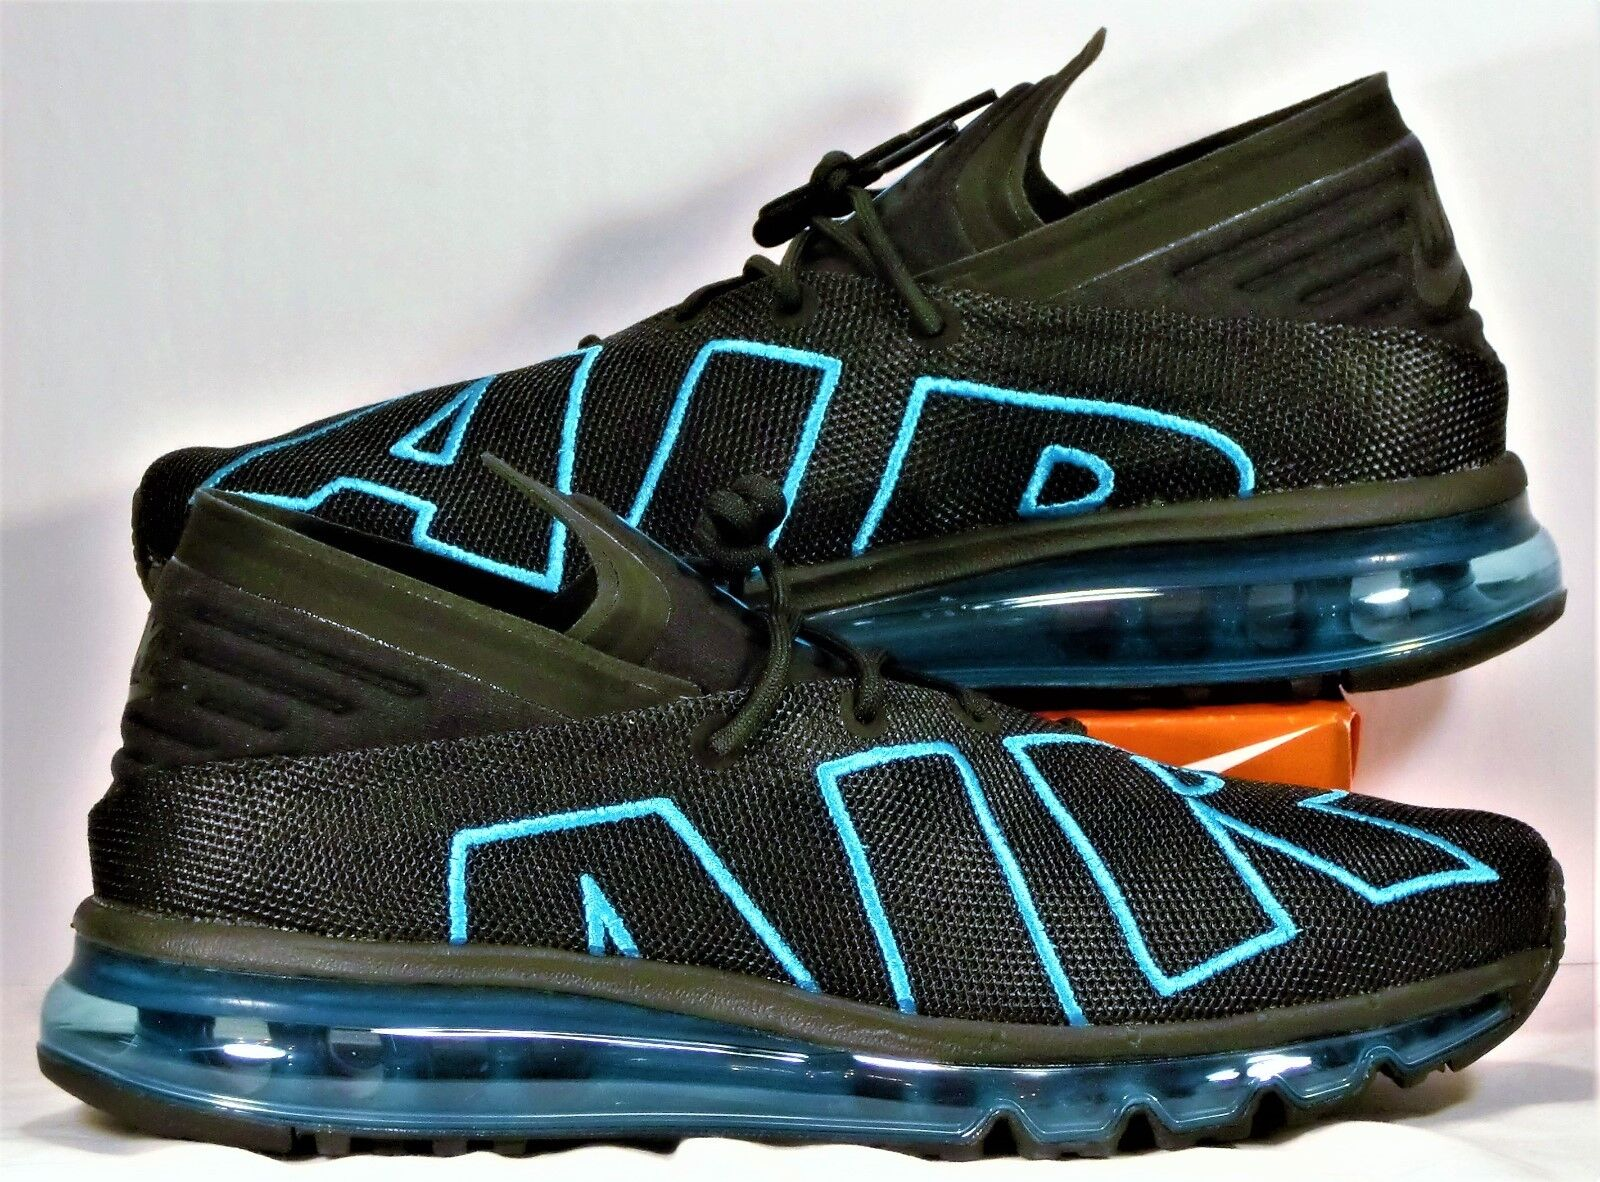 Nike Air Max Flair Black & Neo Turquoise Running shoes Sz 11 NEW 942236 010